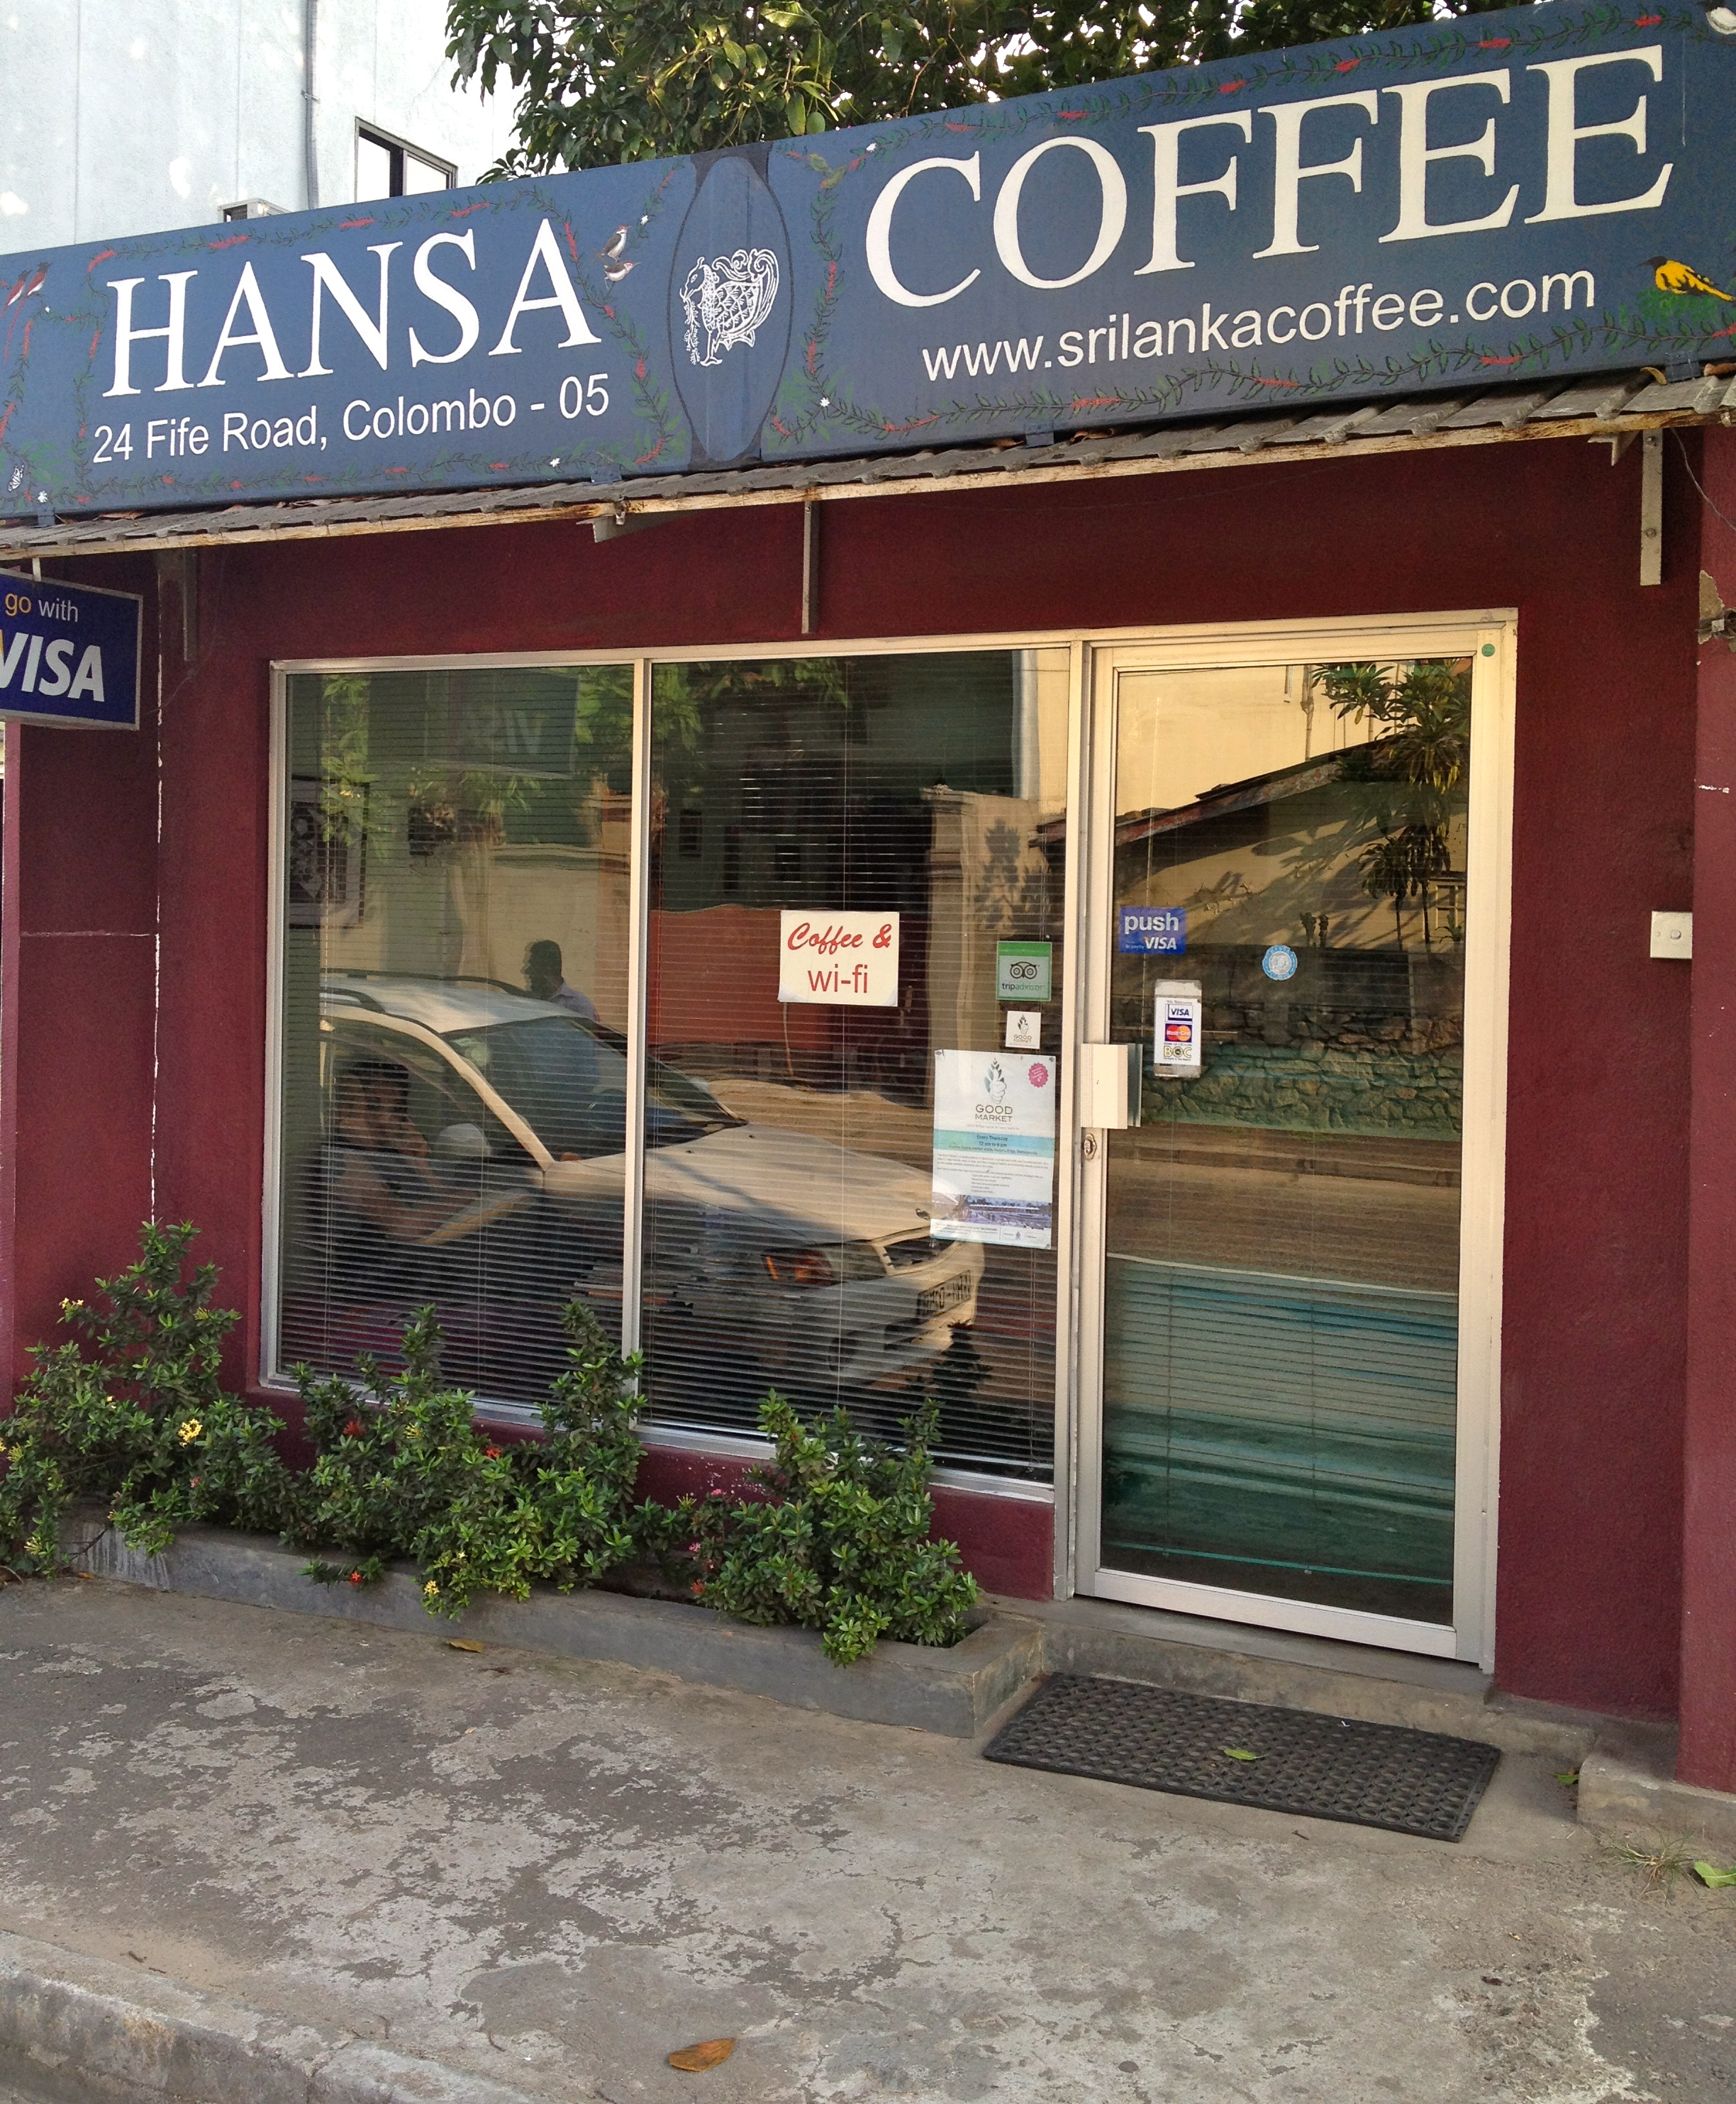 Hansa Coffee